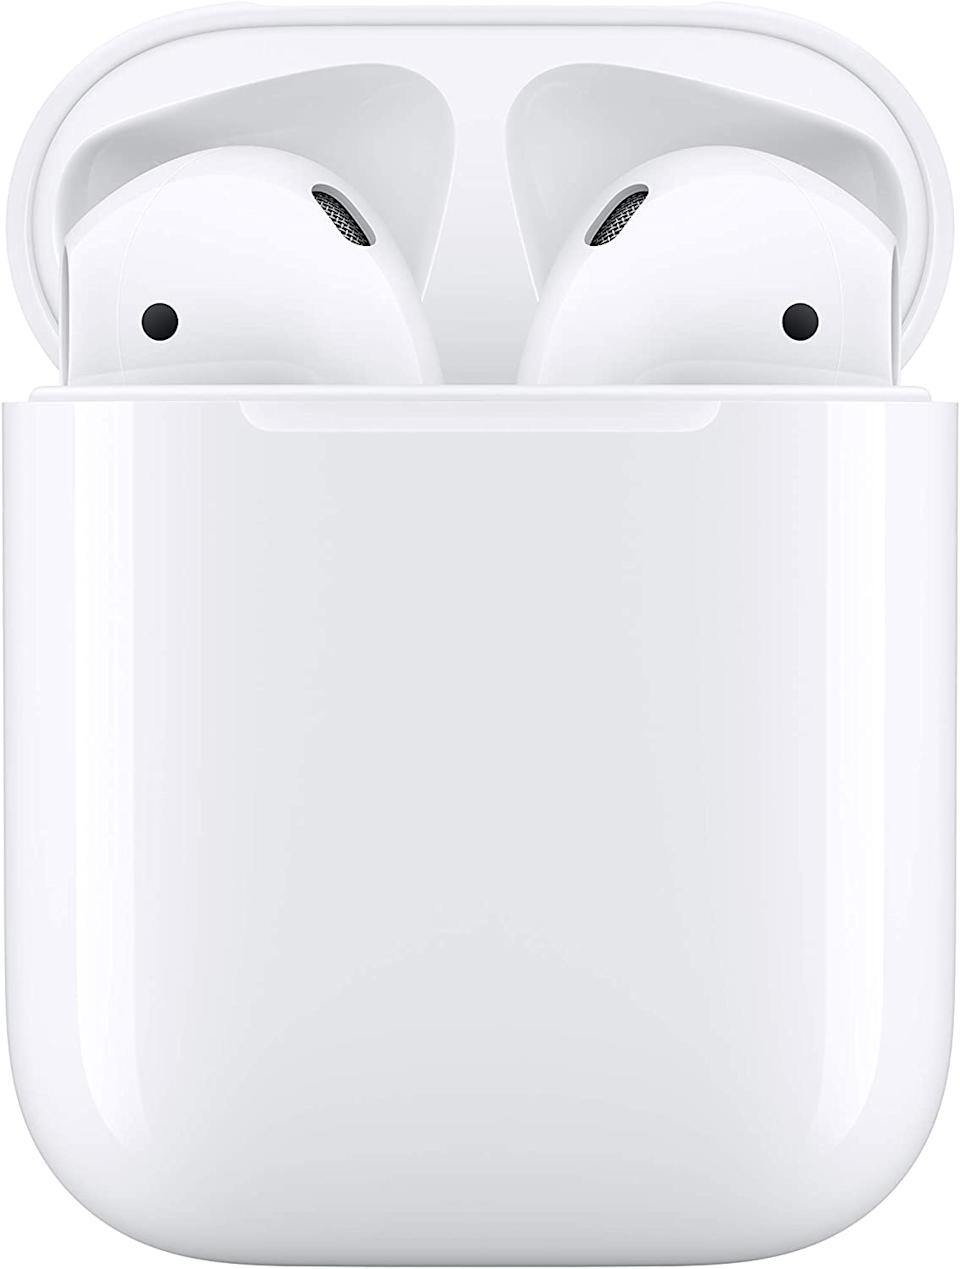 Apple AirPods with Charging Case- Amazon.